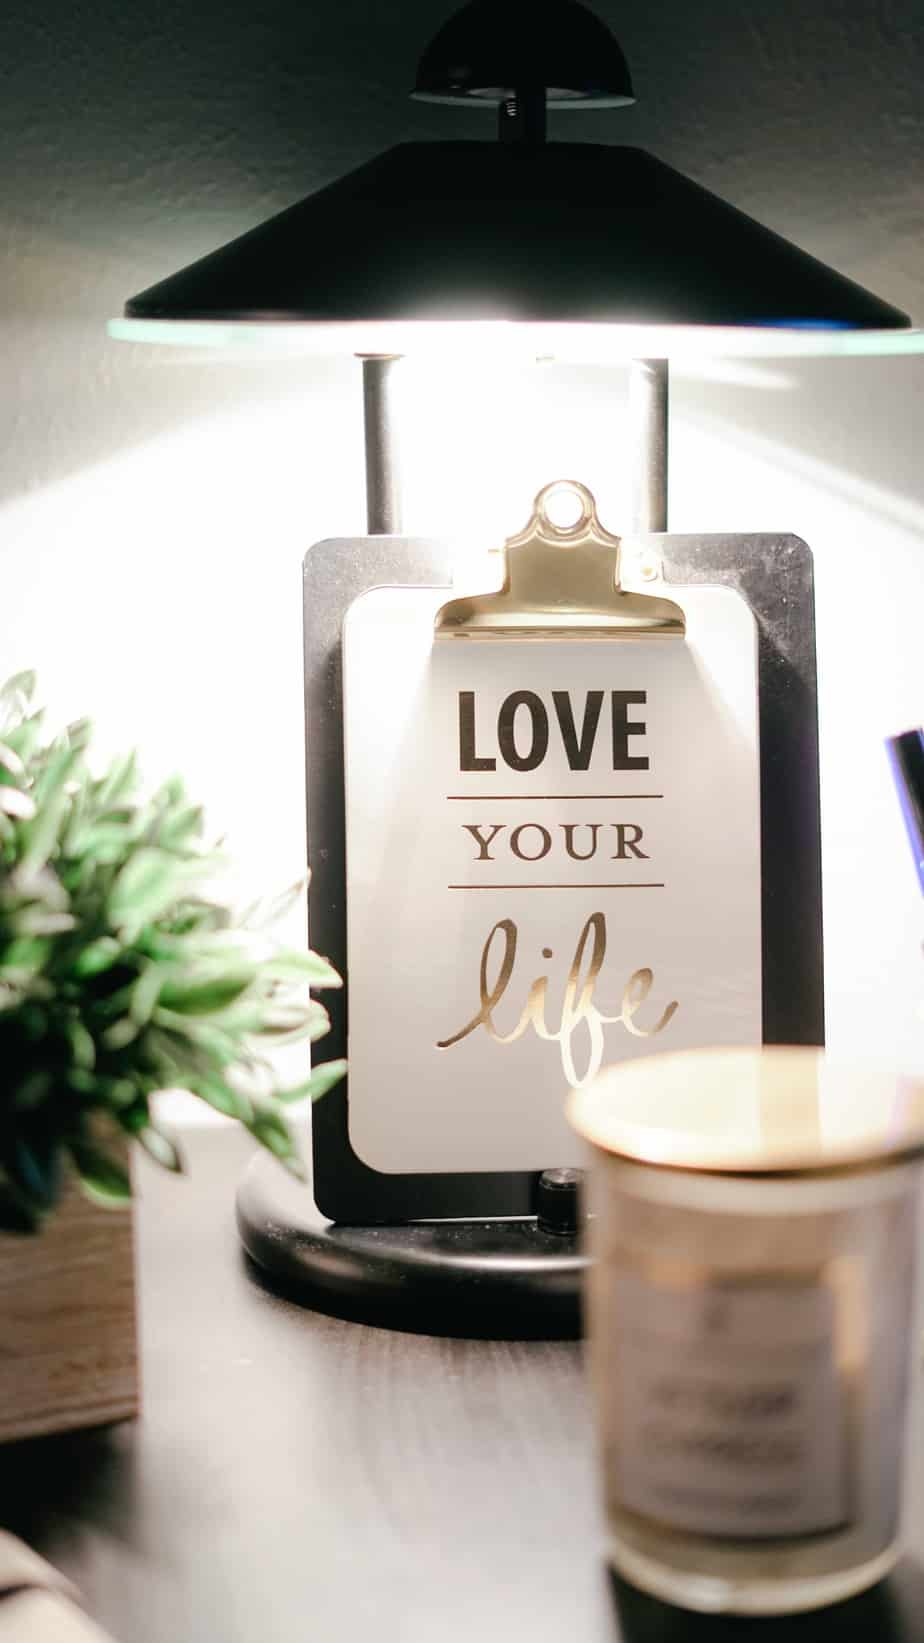 Love your Life quote under a lamp